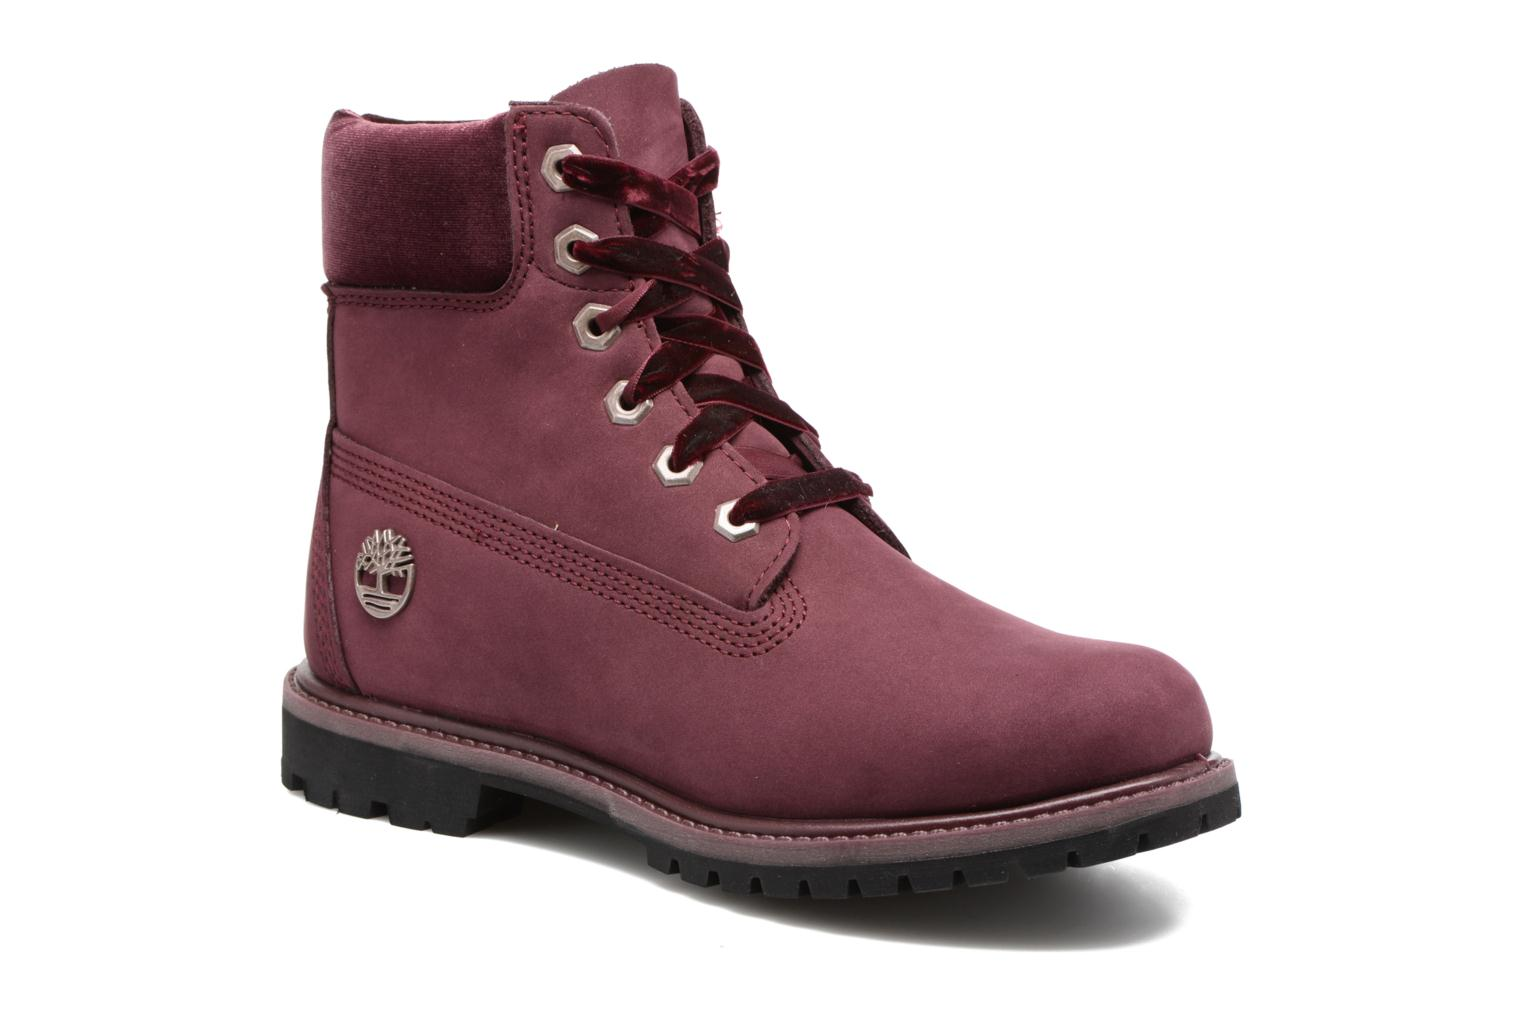 6in Premium WP Boot L/F- W Port Royale Waterbuck